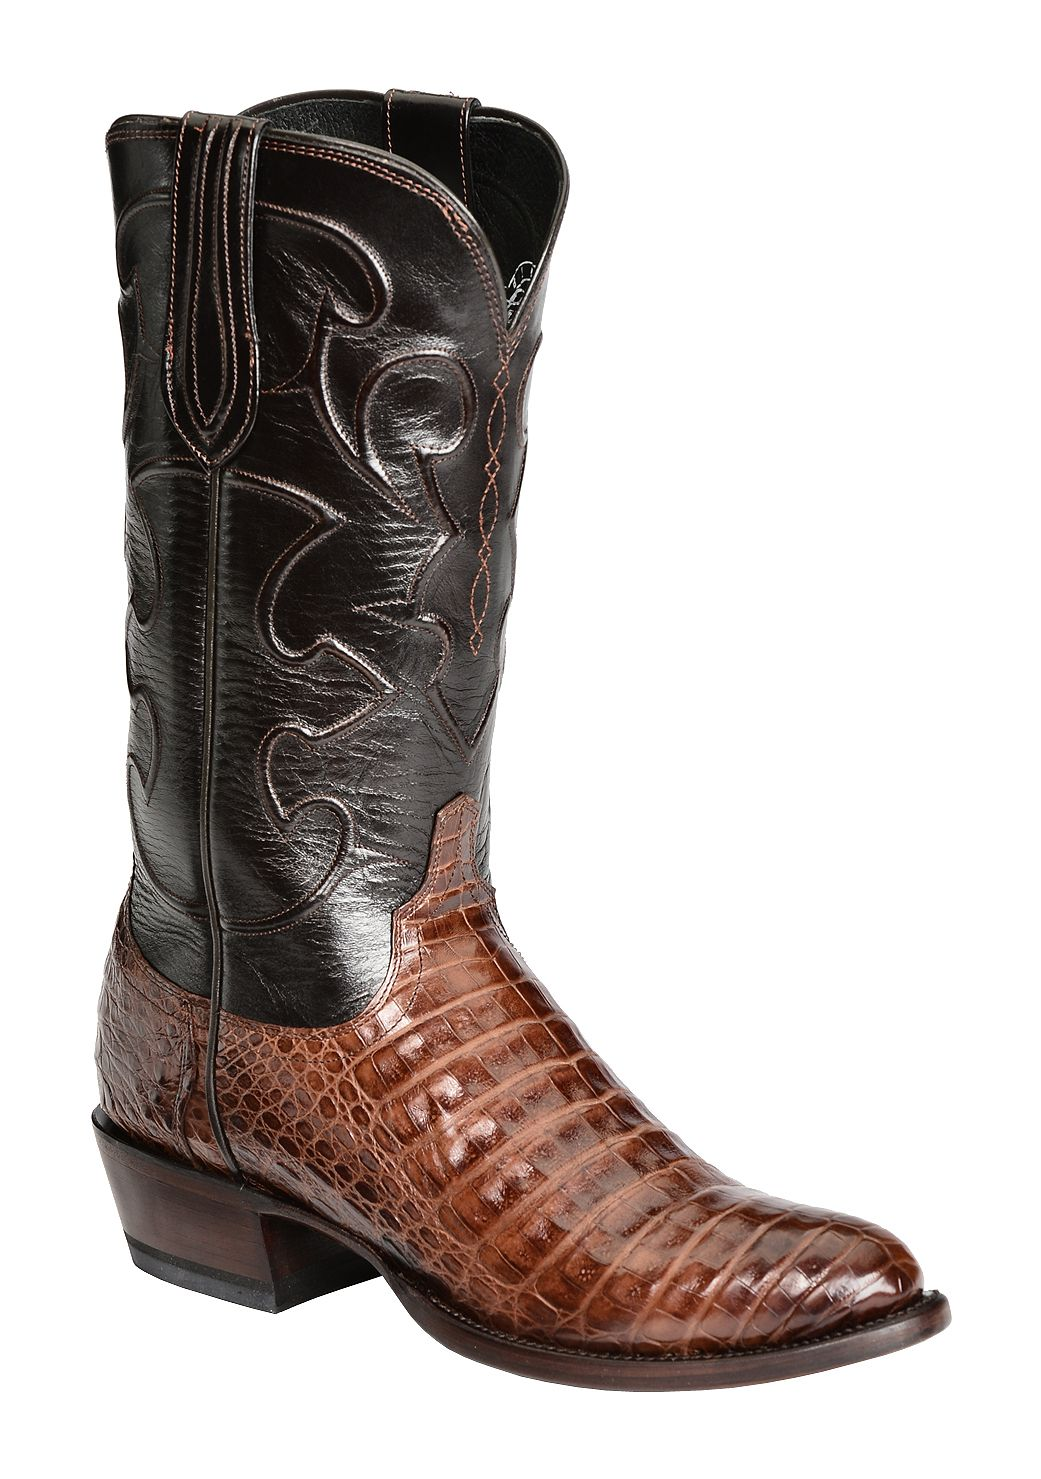 Lucchese Dress Shoes